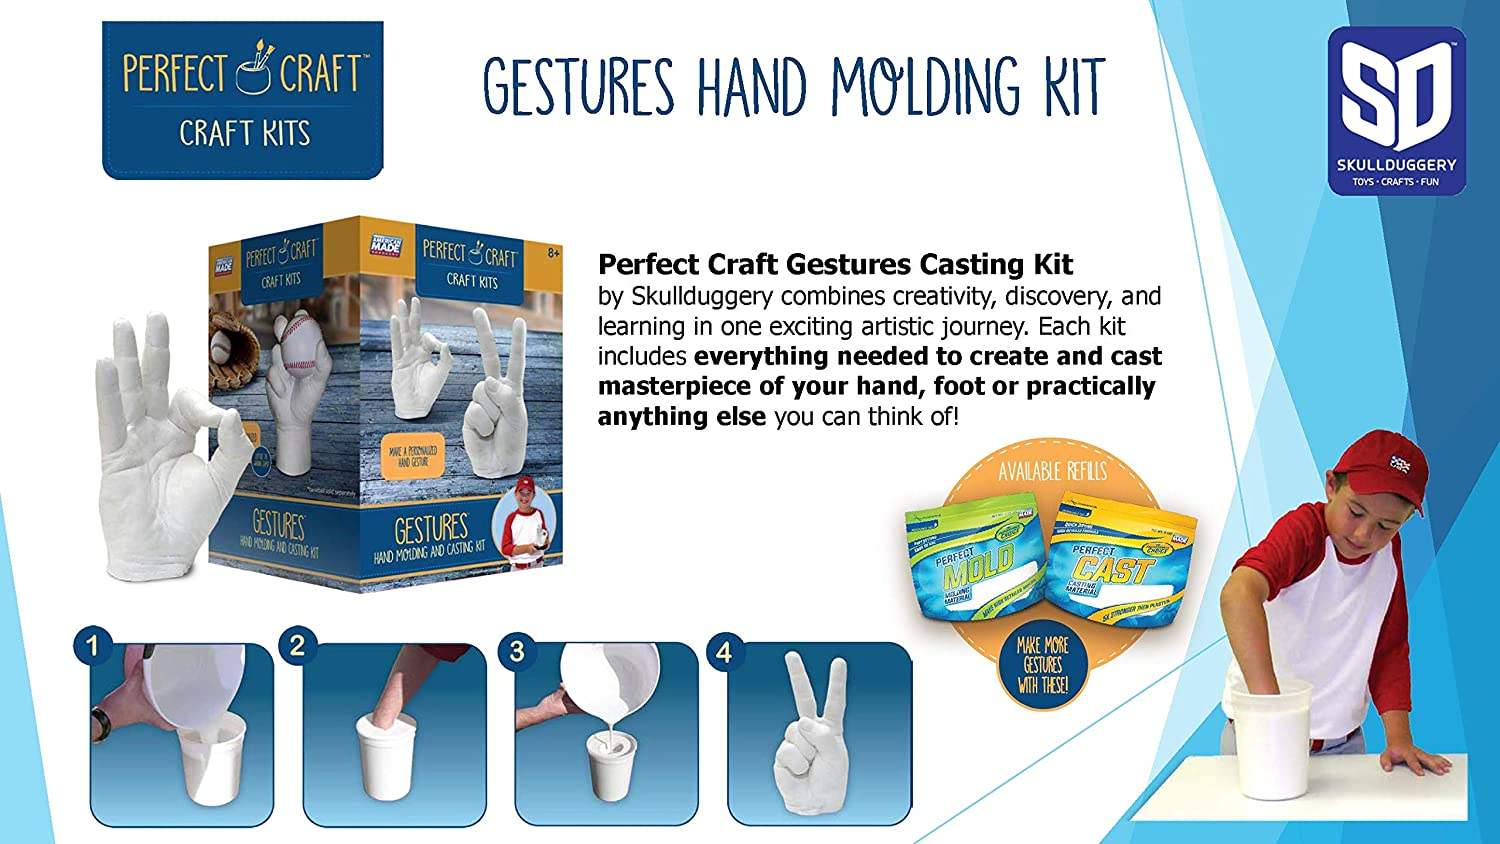 Perfect Craft Gestures Perfect Cast Molding and Casting Kit